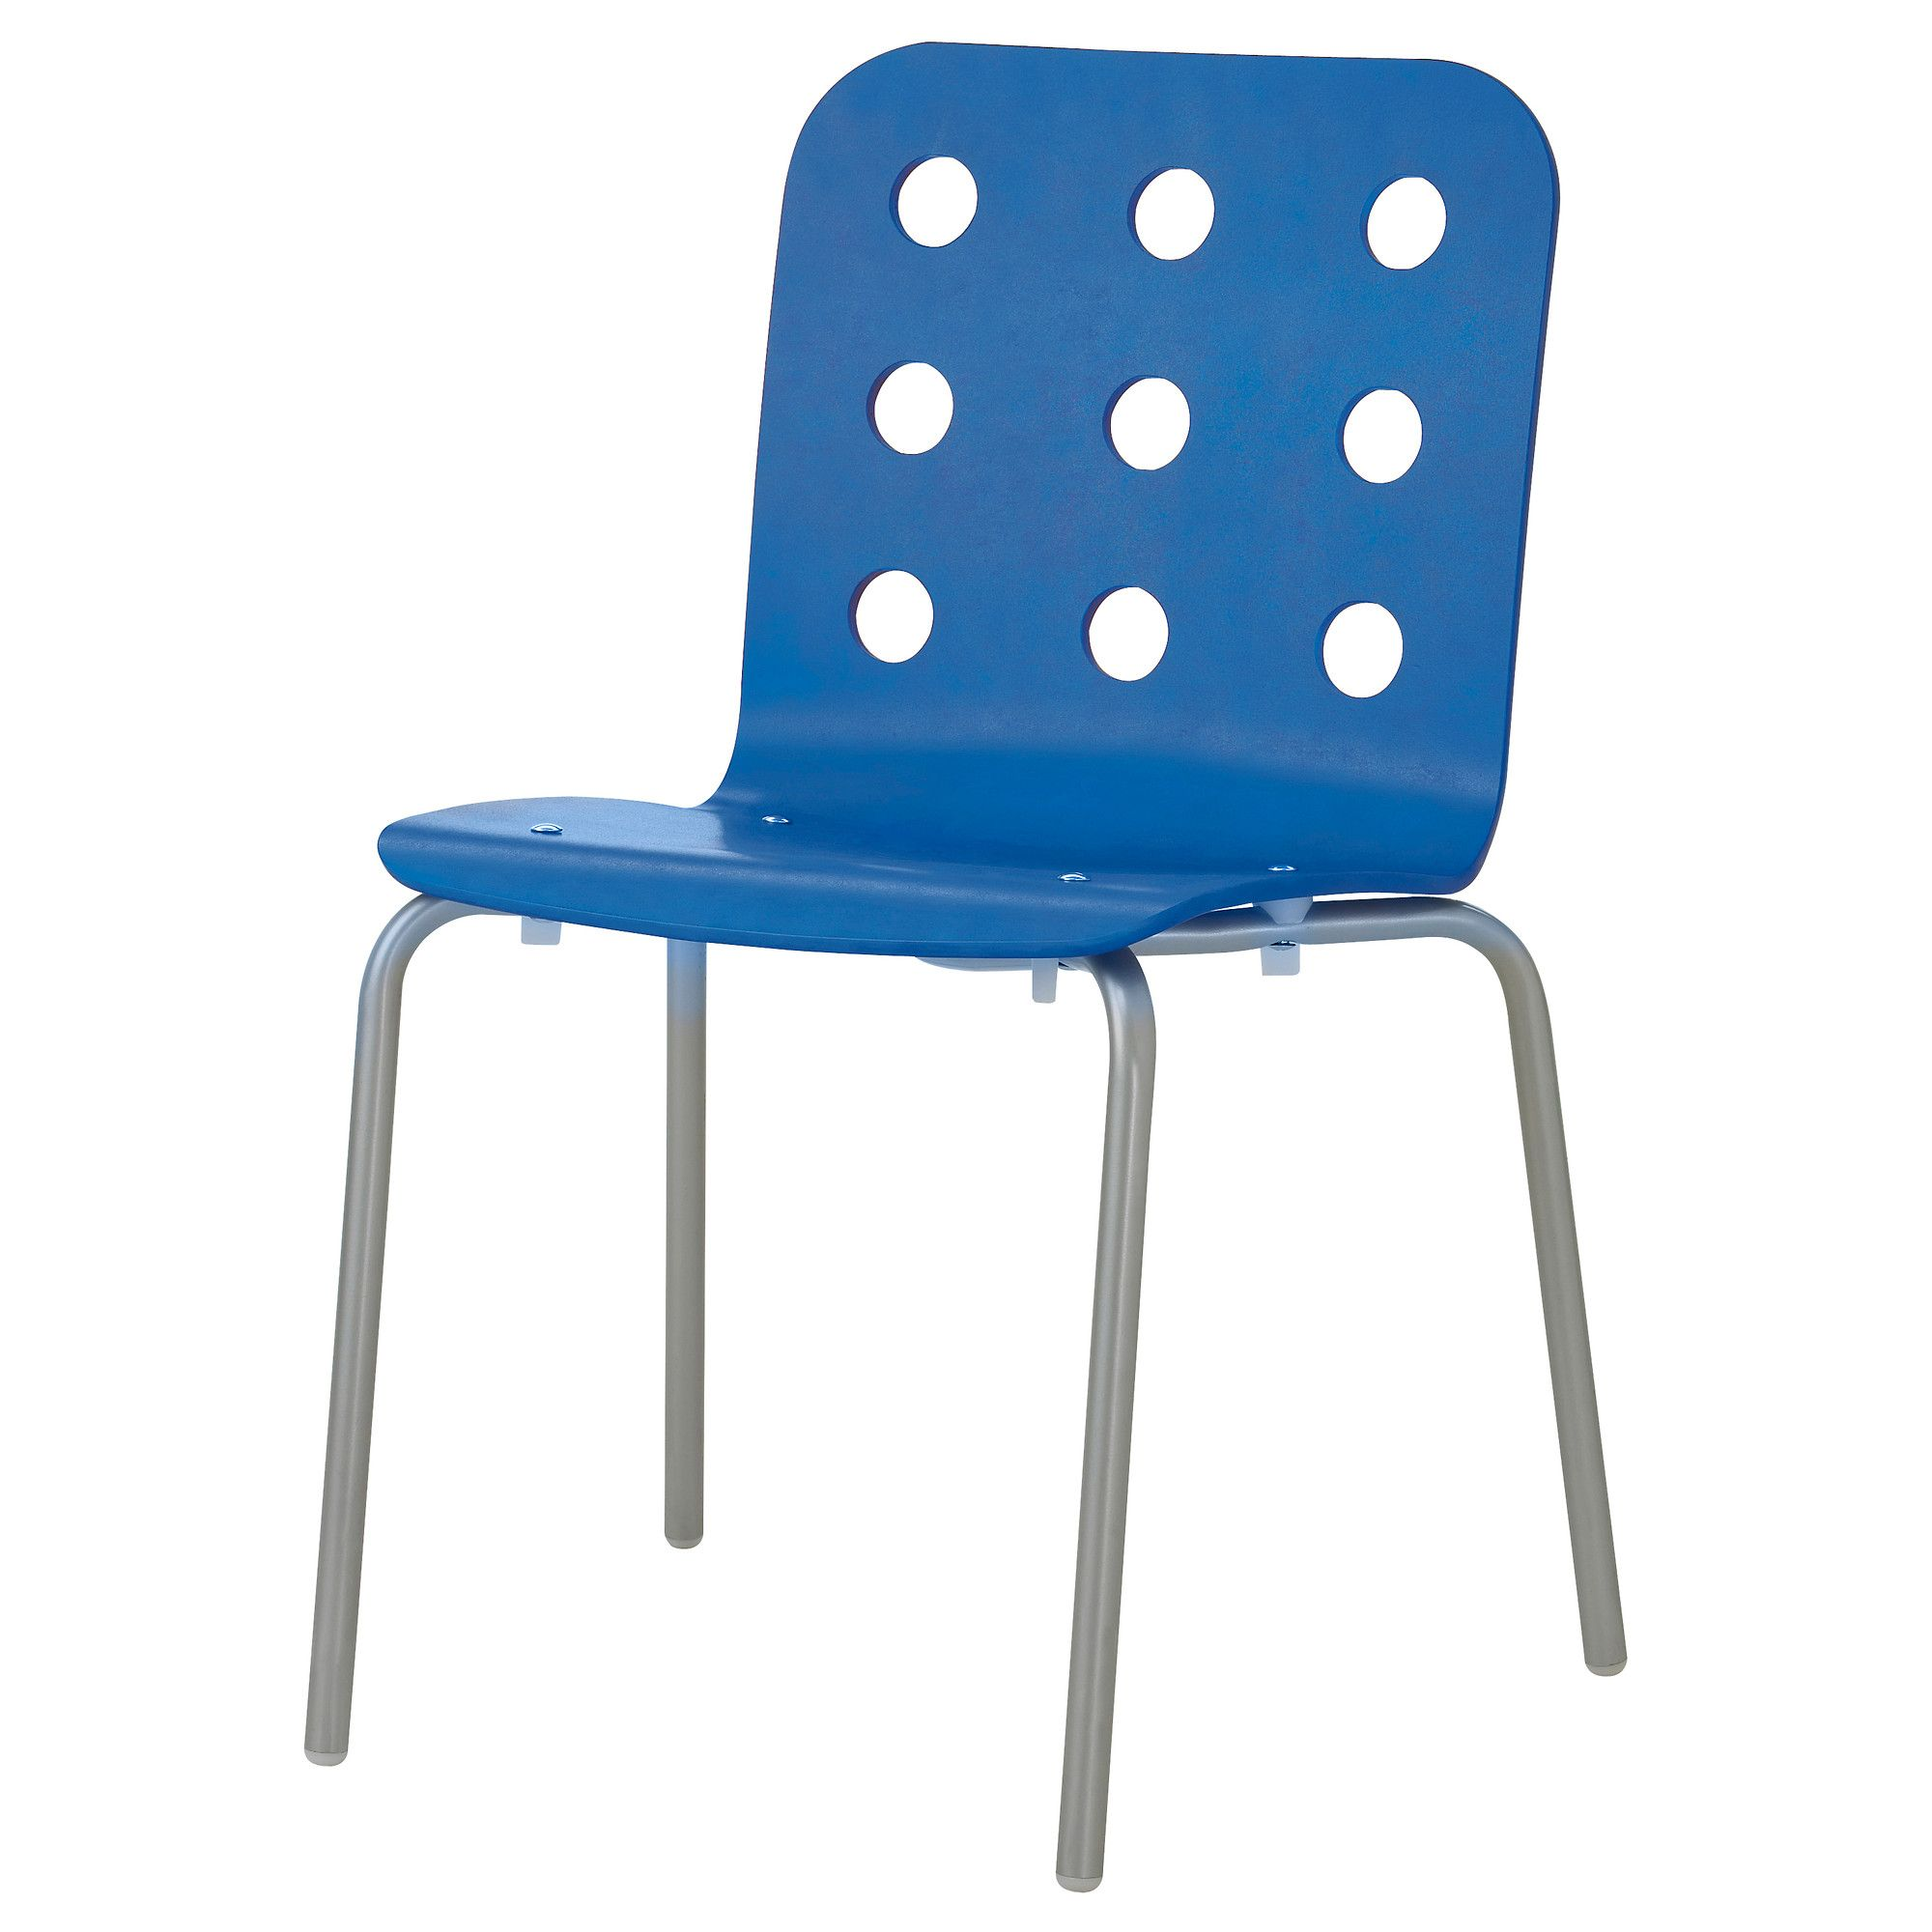 ikea jules chair white makeup 34 99 many color combos visitor blue silver